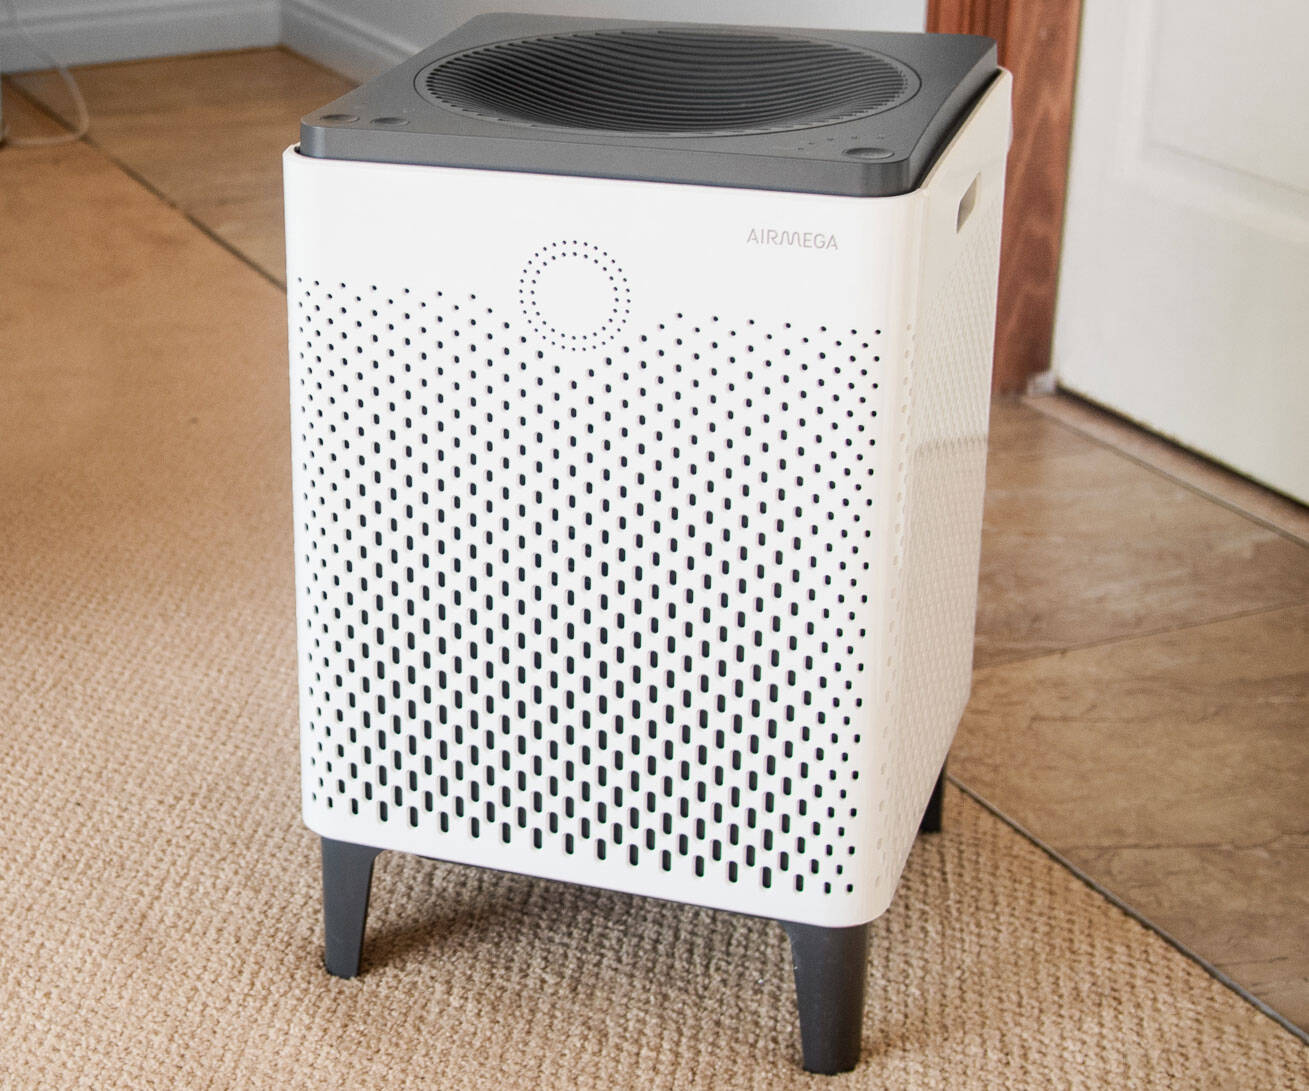 Airmega 3000 Smart Air Purifier - http://coolthings.us